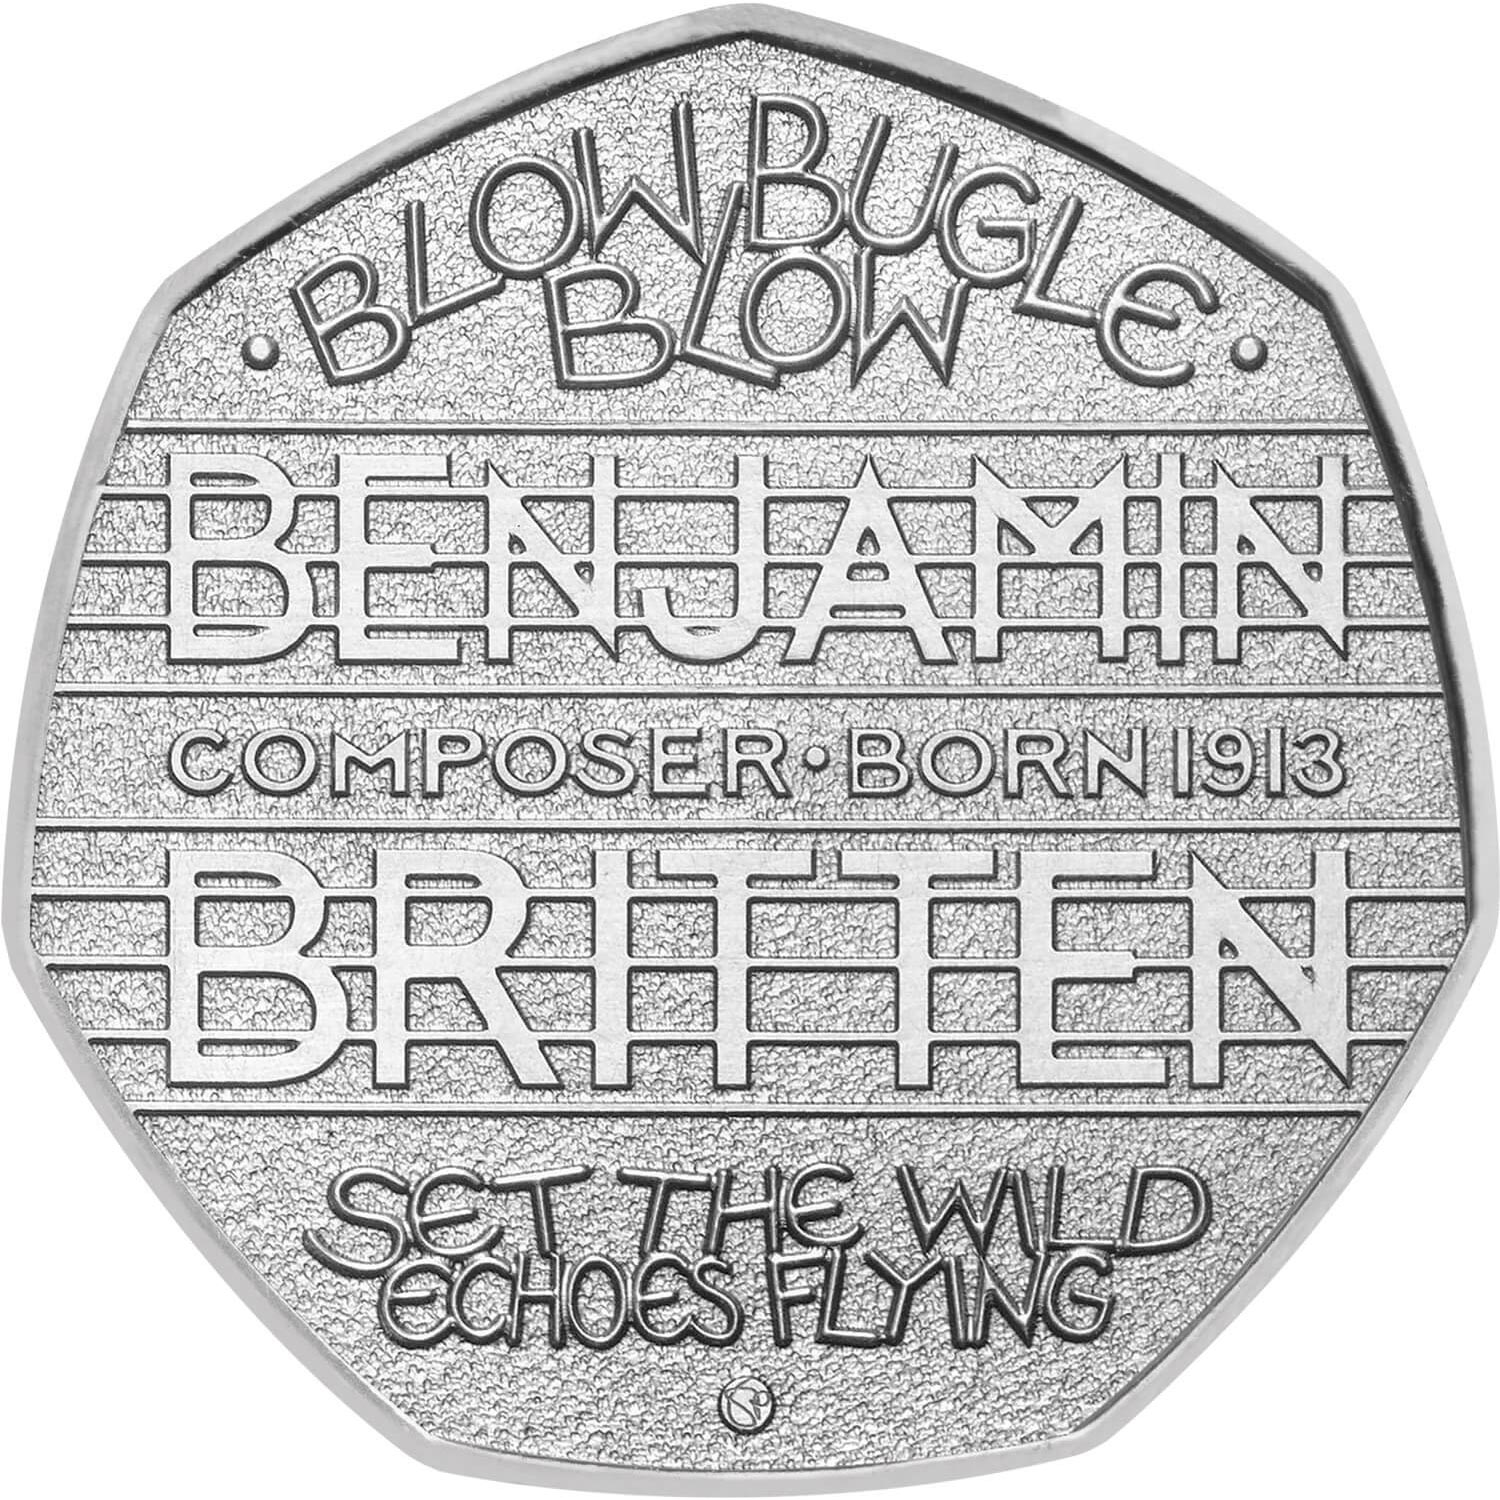 Image of 50 pence coin - The 100th Anniversary of the Birth of Benjamin Britten | United Kingdom 2013.  The Copper–Nickel (CuNi) coin is of UNC quality.